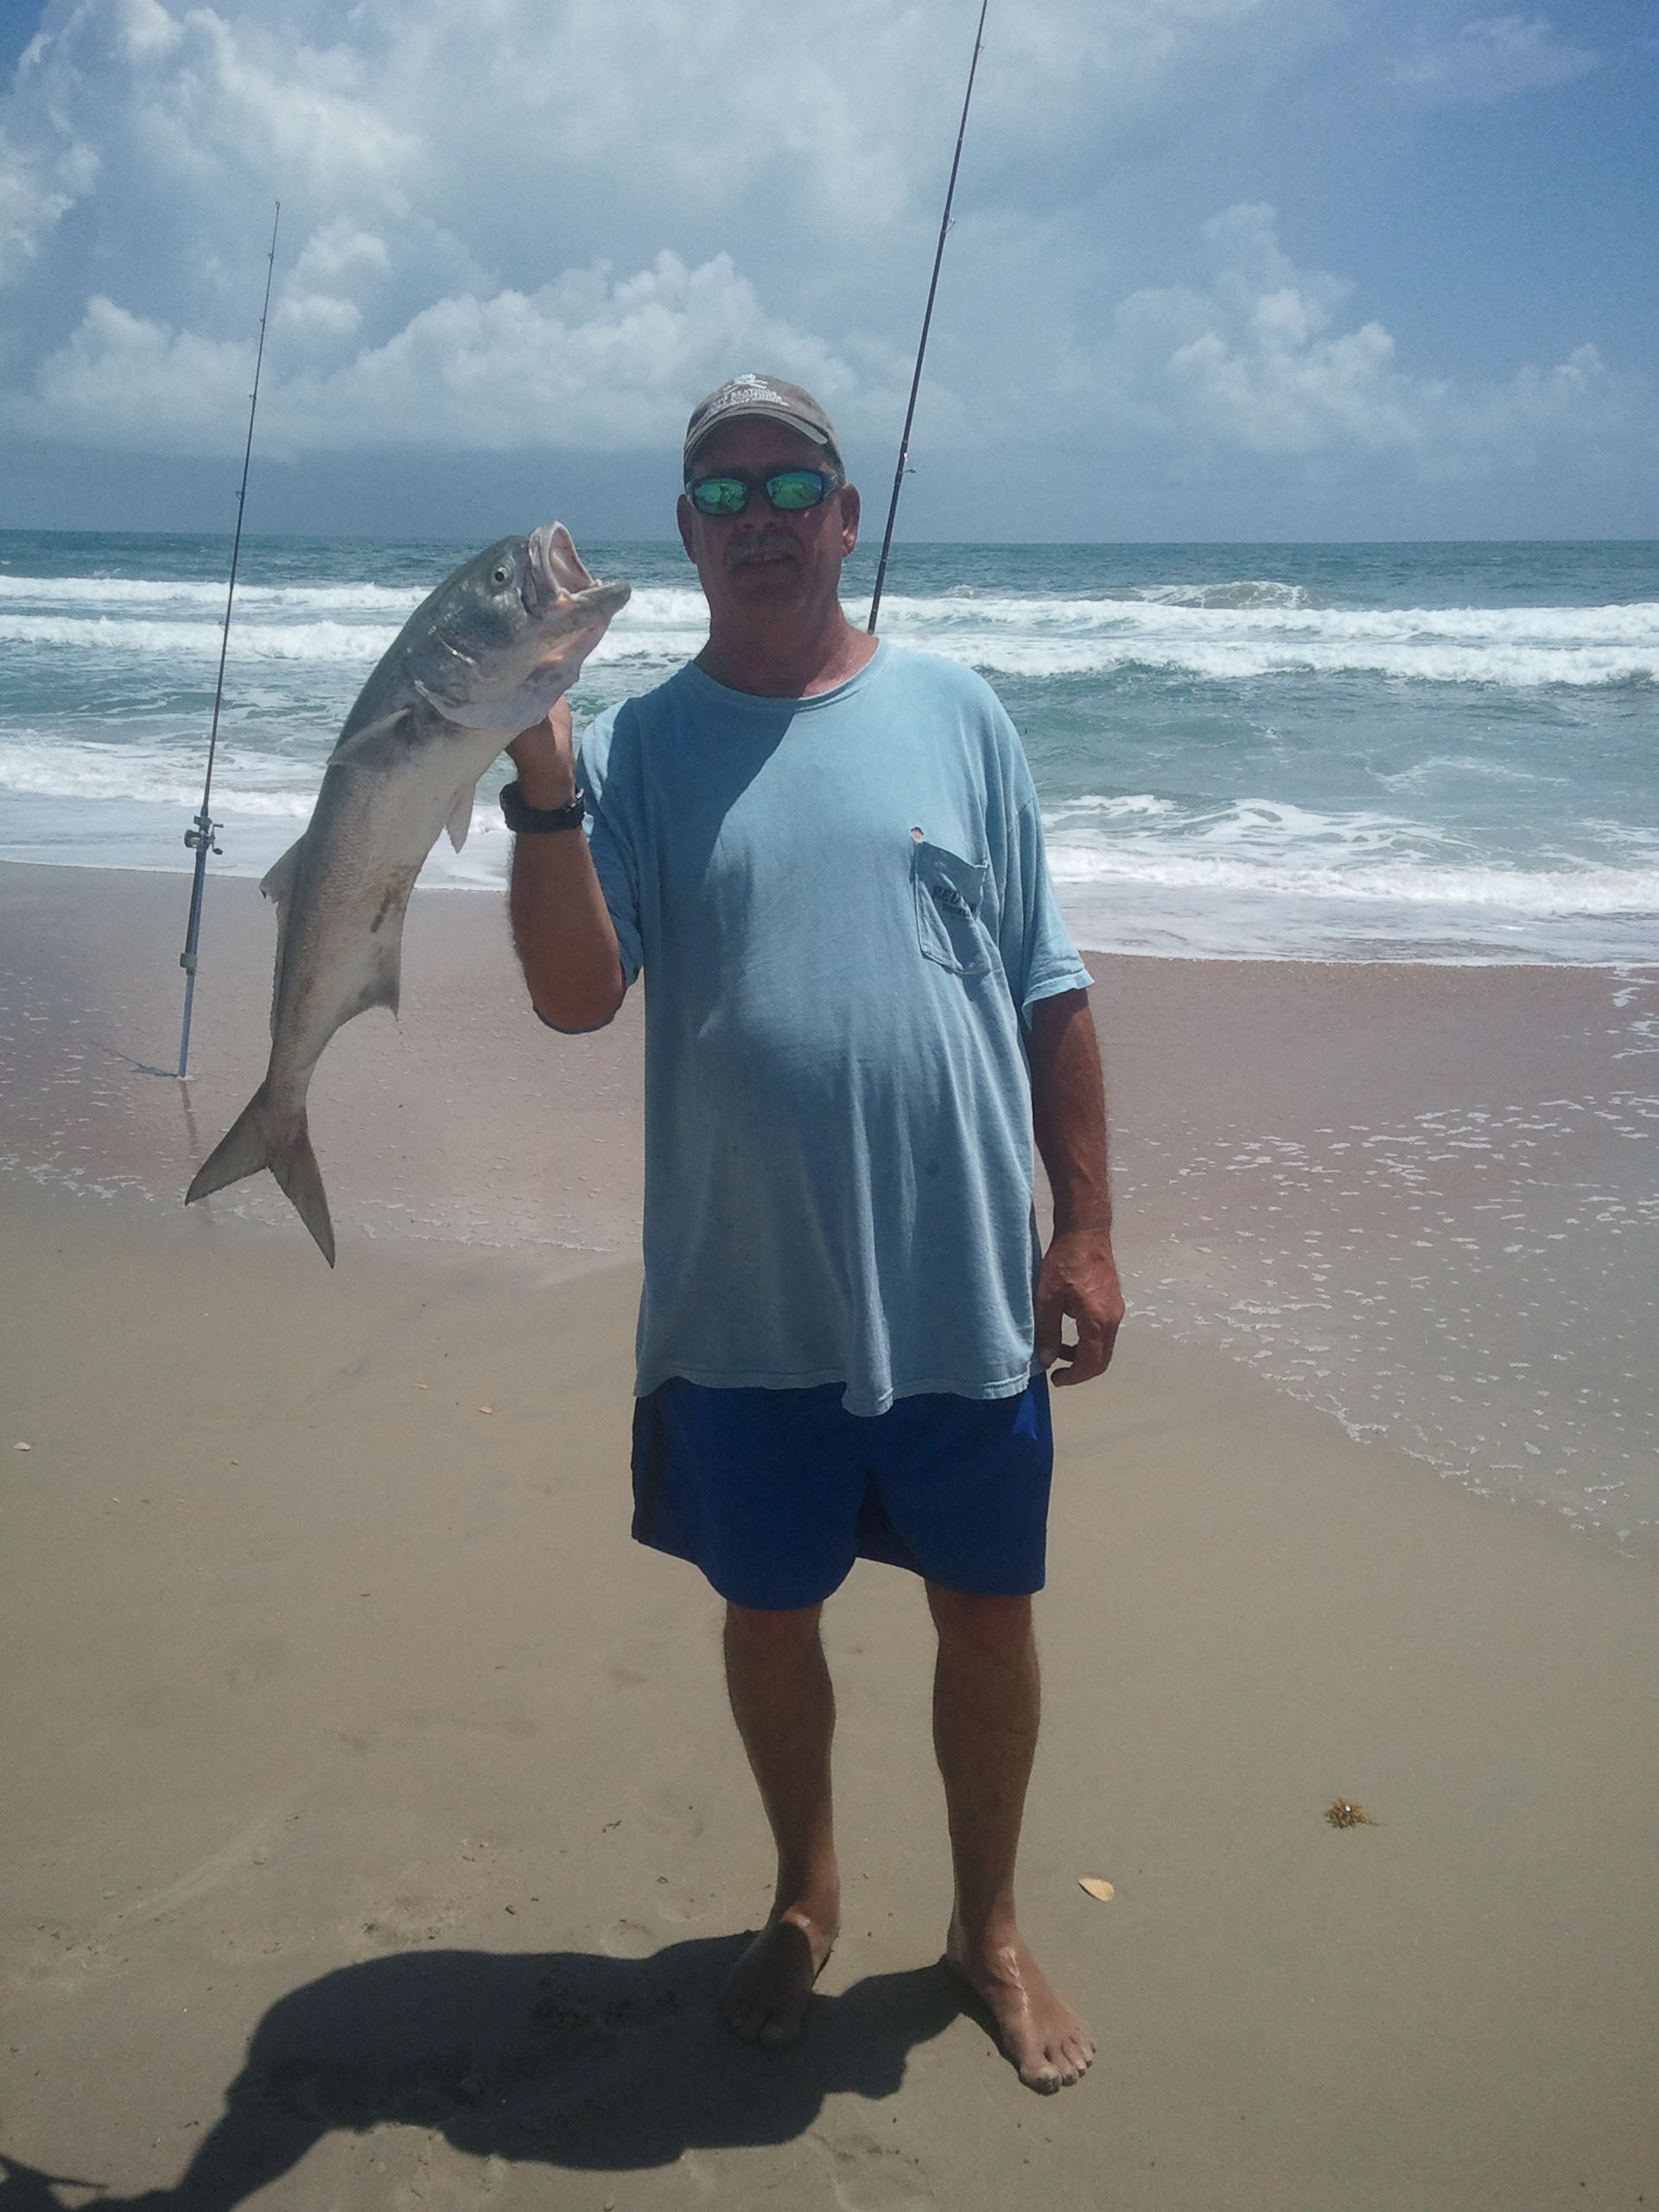 Memorial day hatteras island fishing report randy hollowell of edenton nc geenschuldenfo Image collections